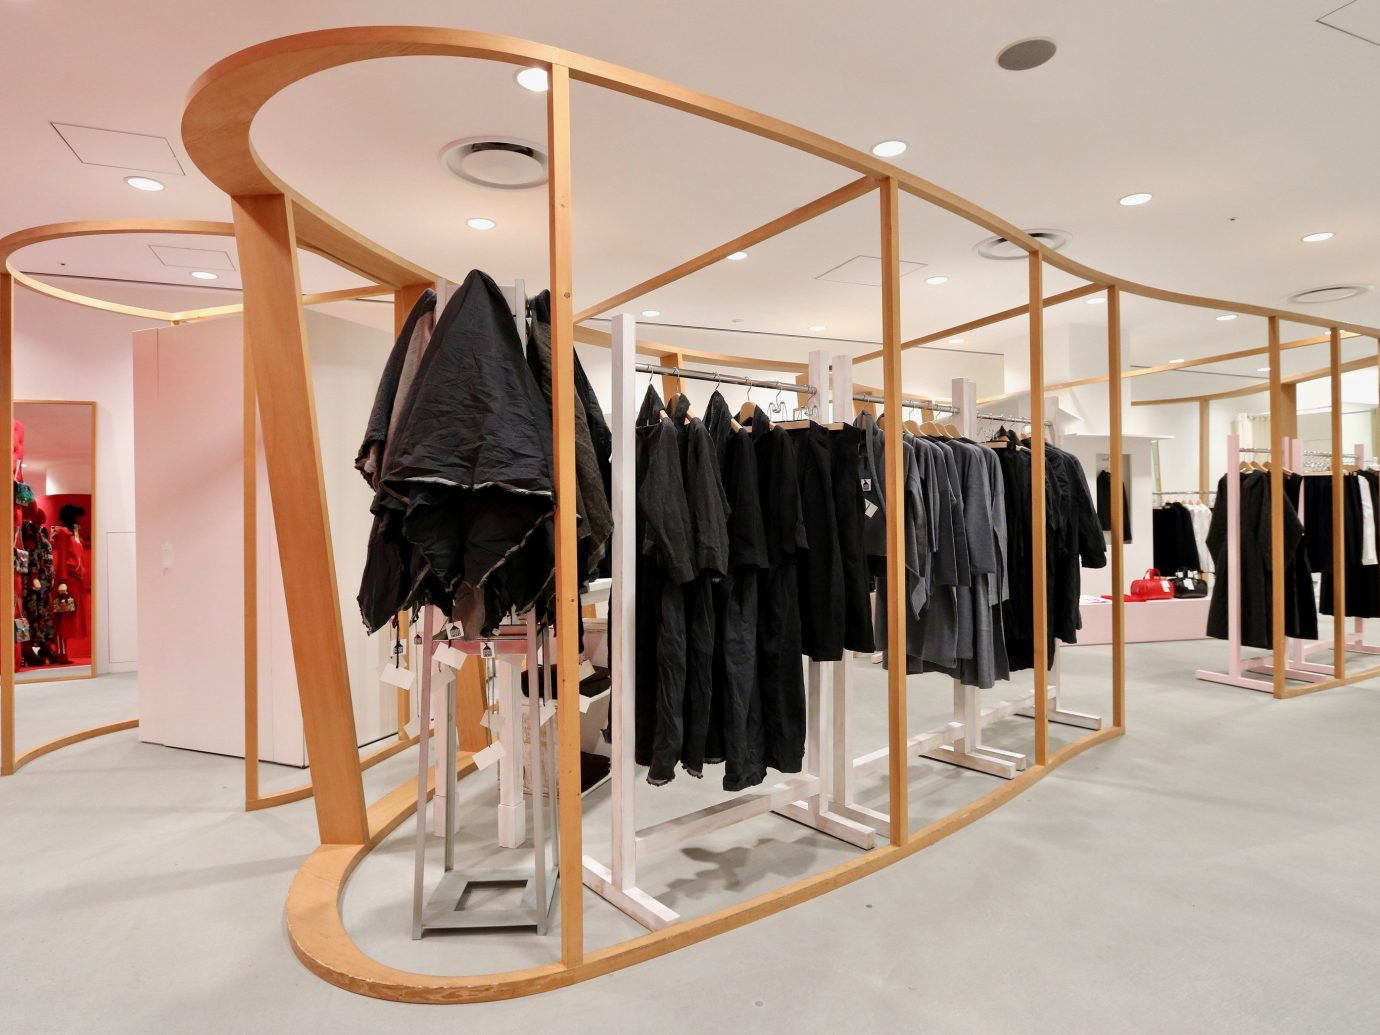 shopping Style + Design Travel Trends Trip Ideas indoor Boutique exhibition interior design product design clothes hanger furniture retail flooring product